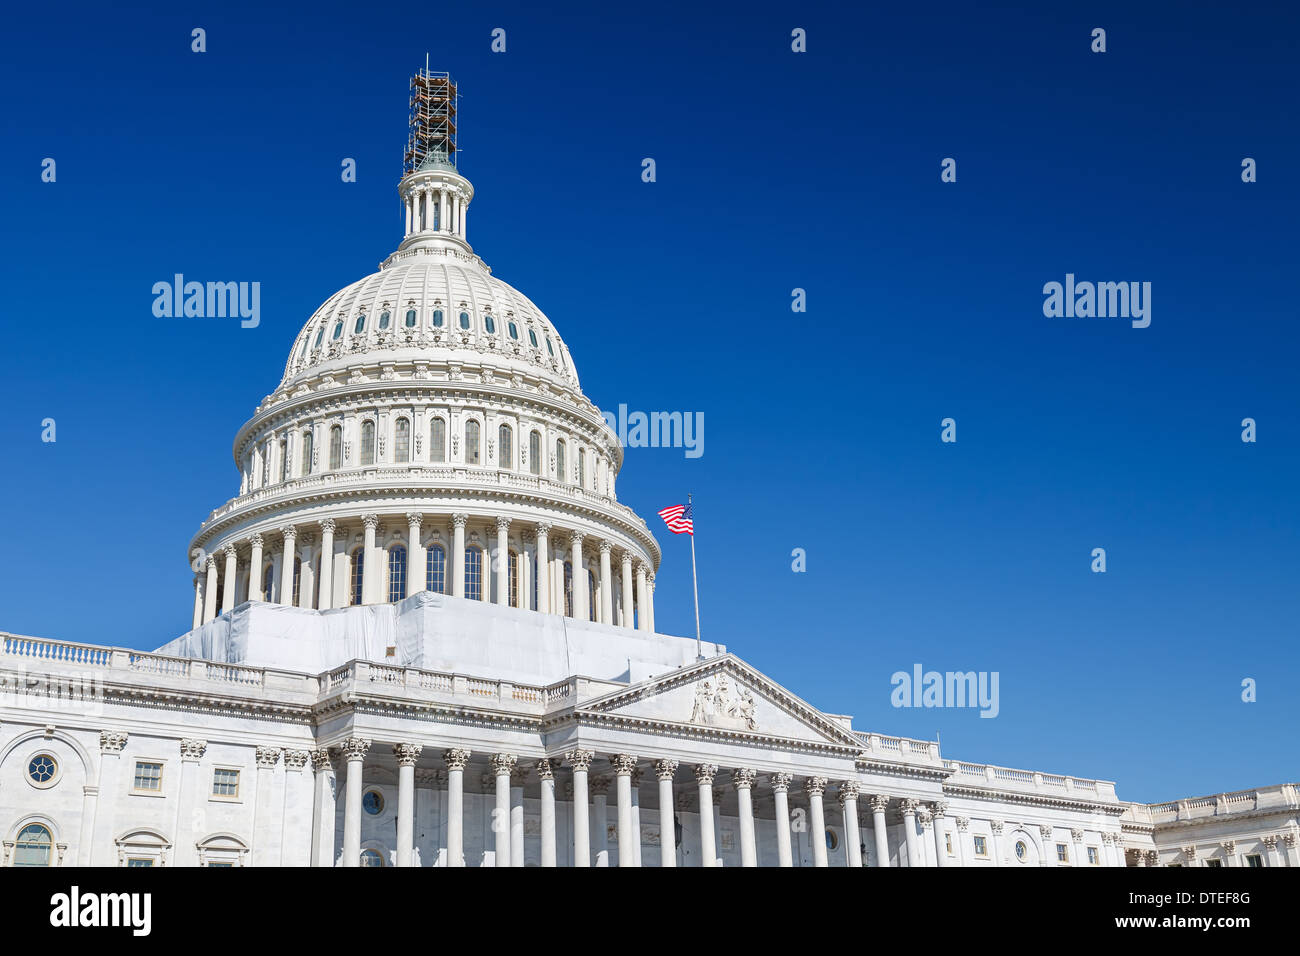 US Capitol, Washington DC Photo Stock